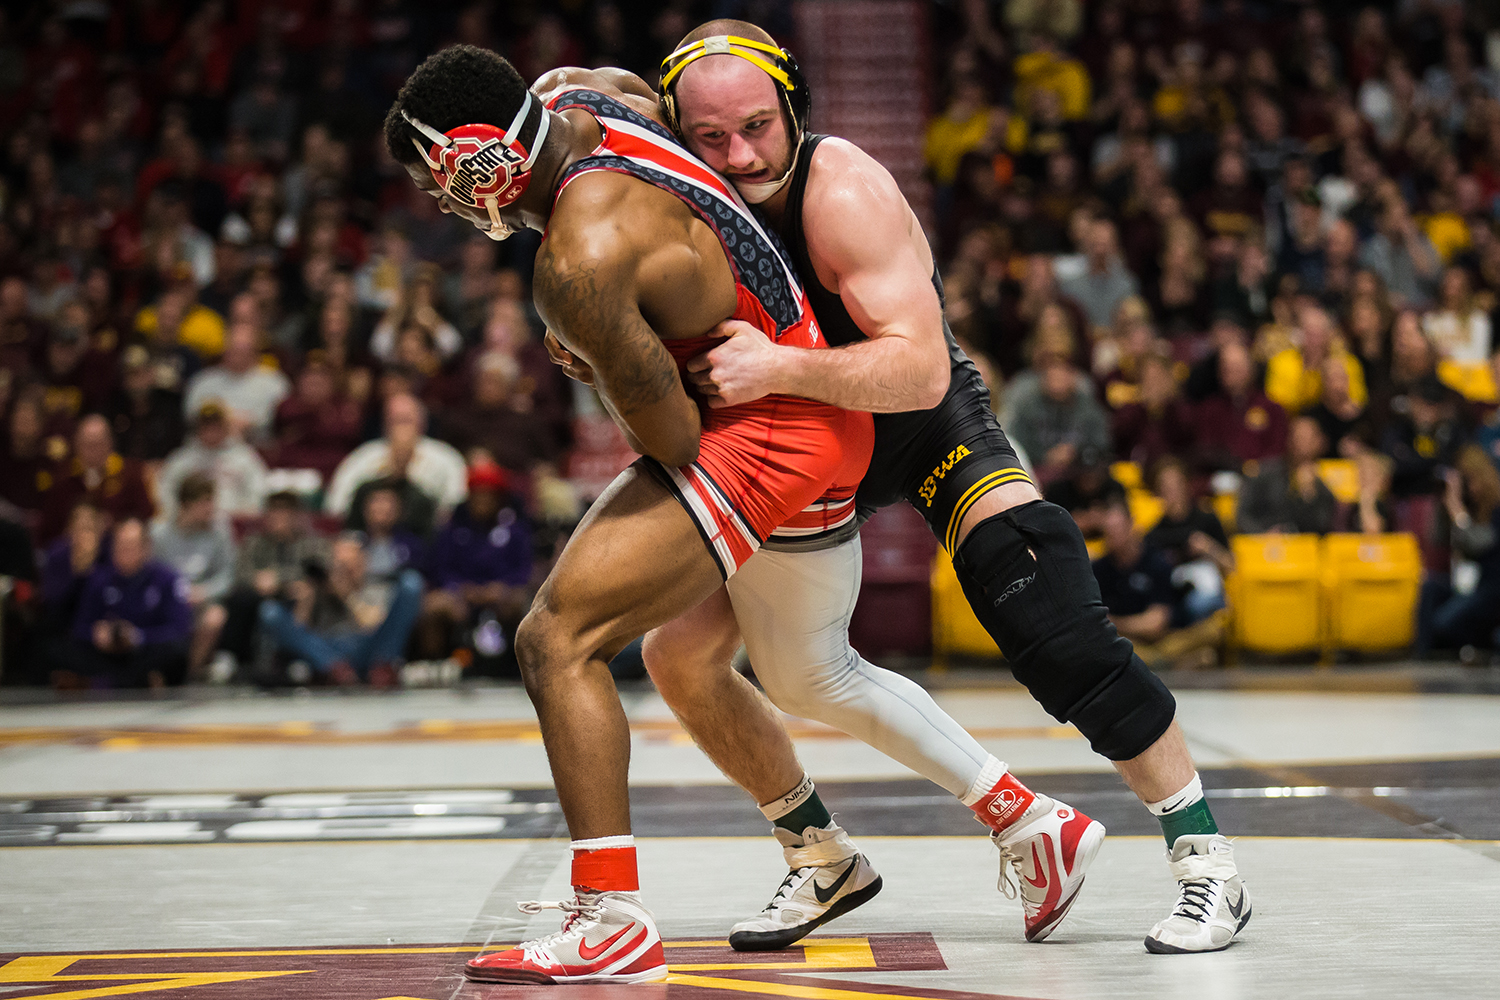 Iowa's 165-lb Alex Marinelli wrestle's Ohio State's Te'Shan Campbell during the first session of the 2019 Big Ten Wrestling Championships in Minneapolis, MN on Saturday, March 9, 2019. Marinelli won by decision, 6-3. (Shivansh Ahuja/The Daily Iowan)